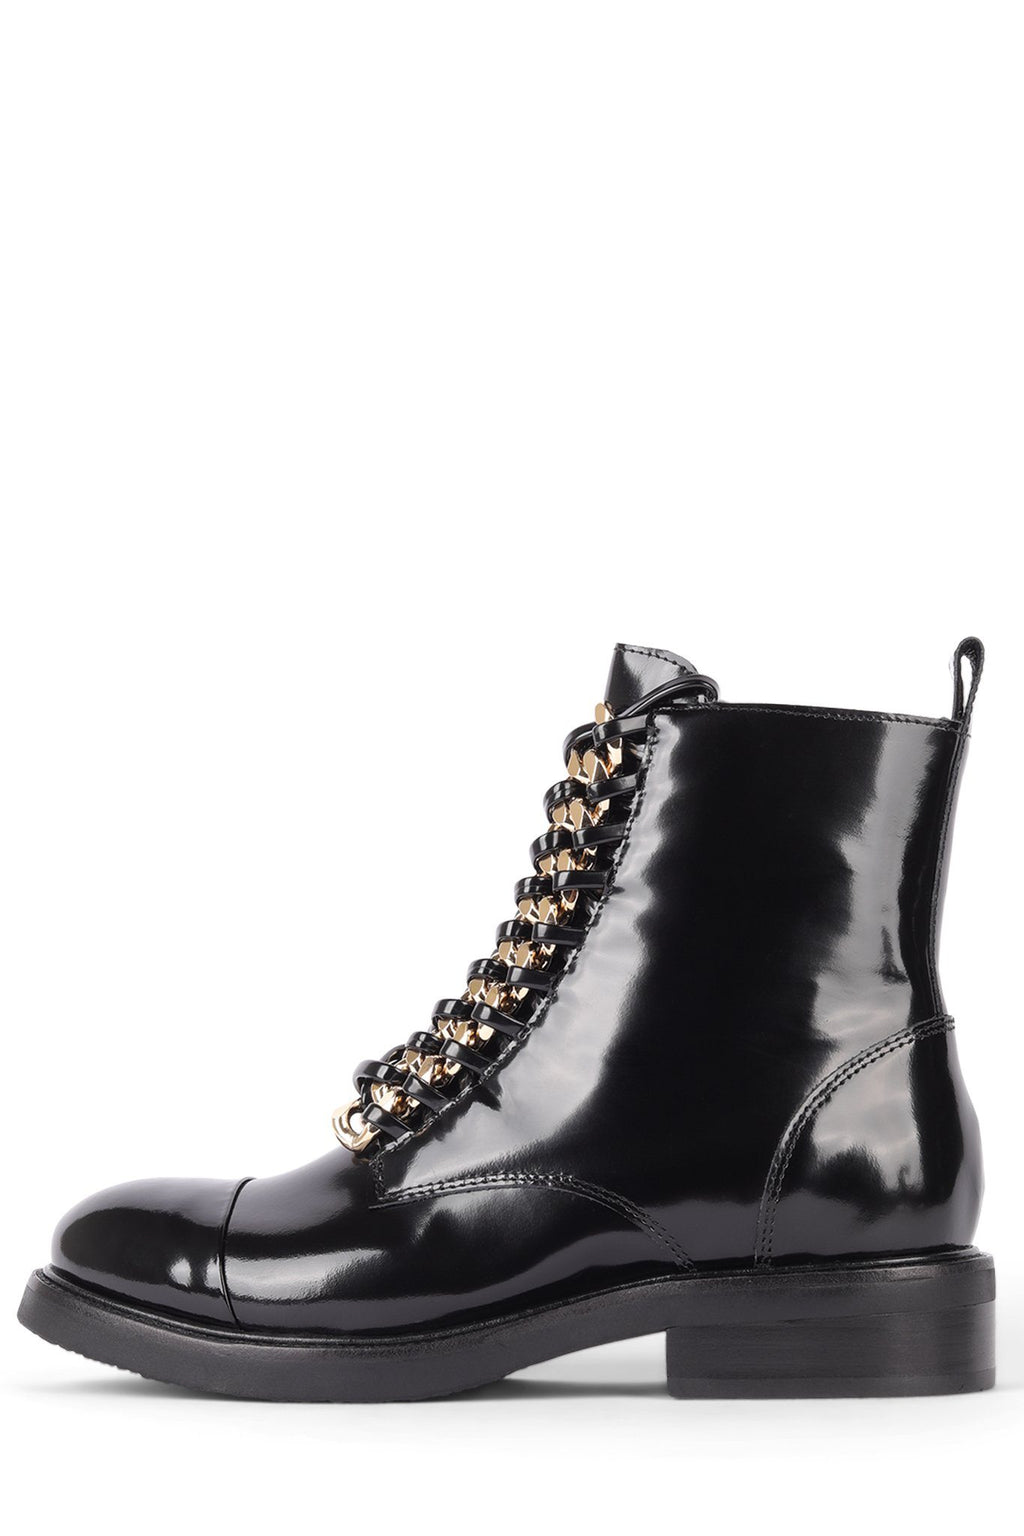 DAMON Jeffrey Campbell Black Box 6